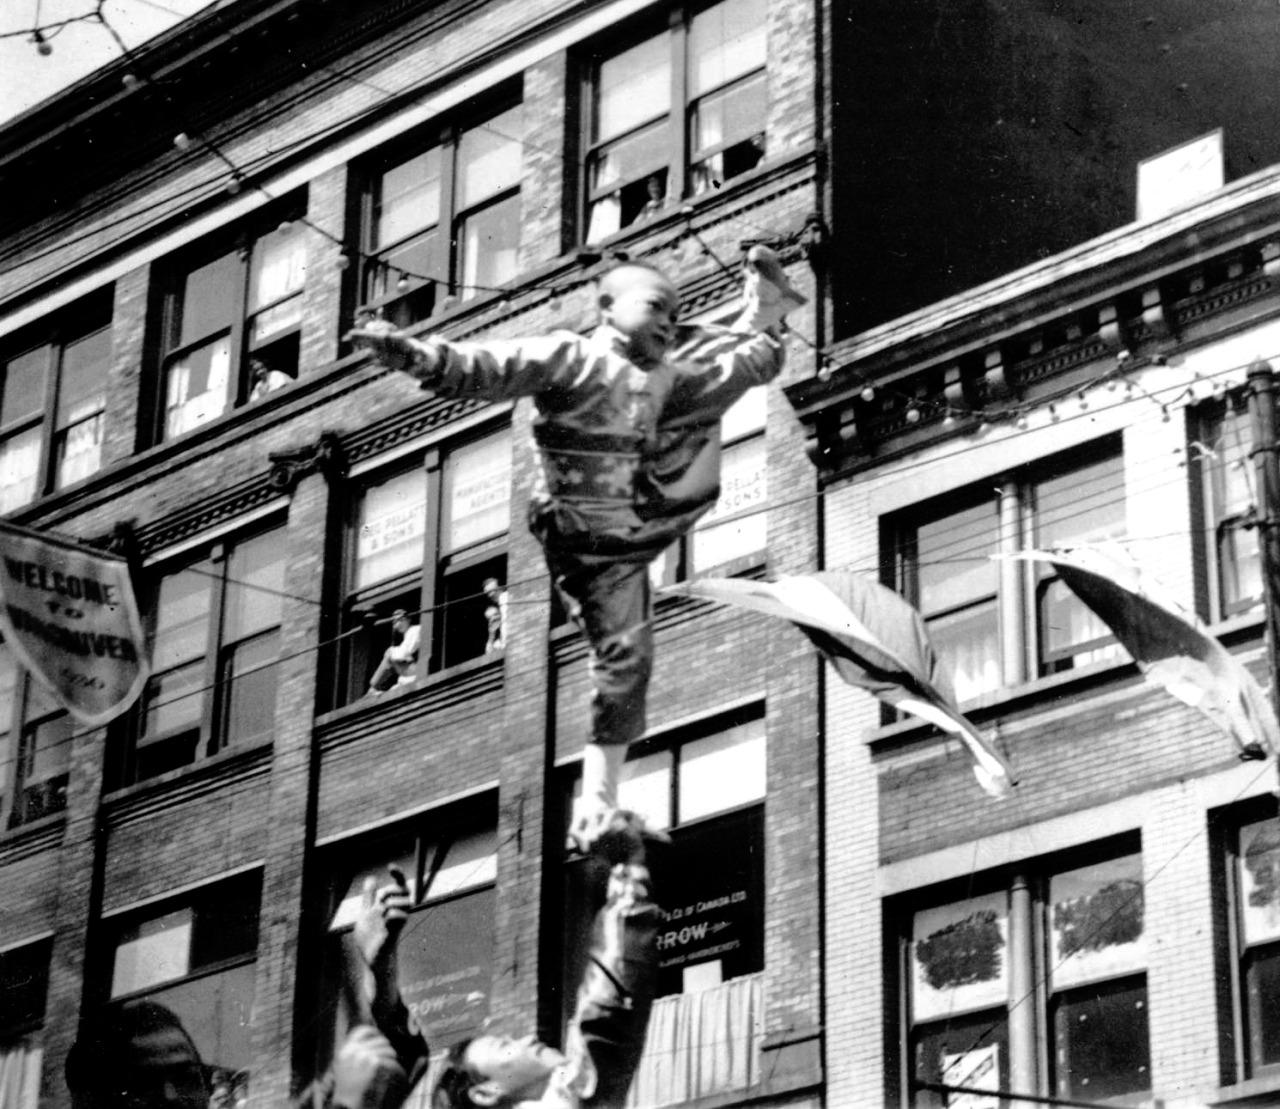 Chinatown acrobat, n.d. Source: Photo by Karl Haspel (cropped), City of Vancouver Archives #300-104